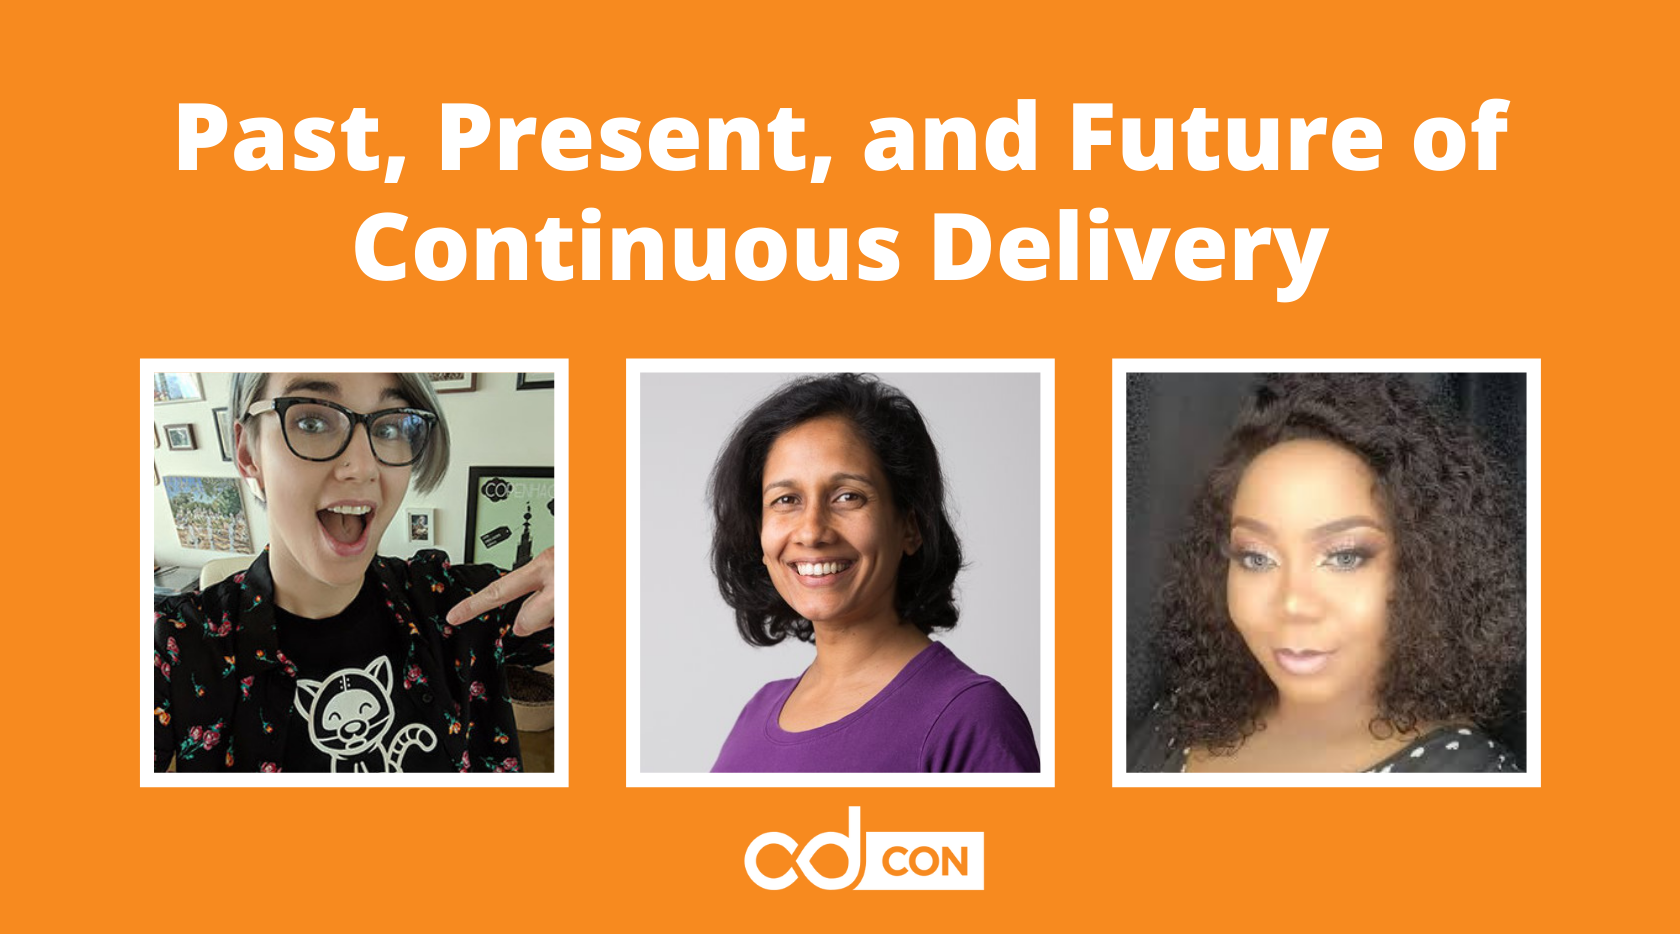 Past, Present and Future of Continuous Delivery Keynote